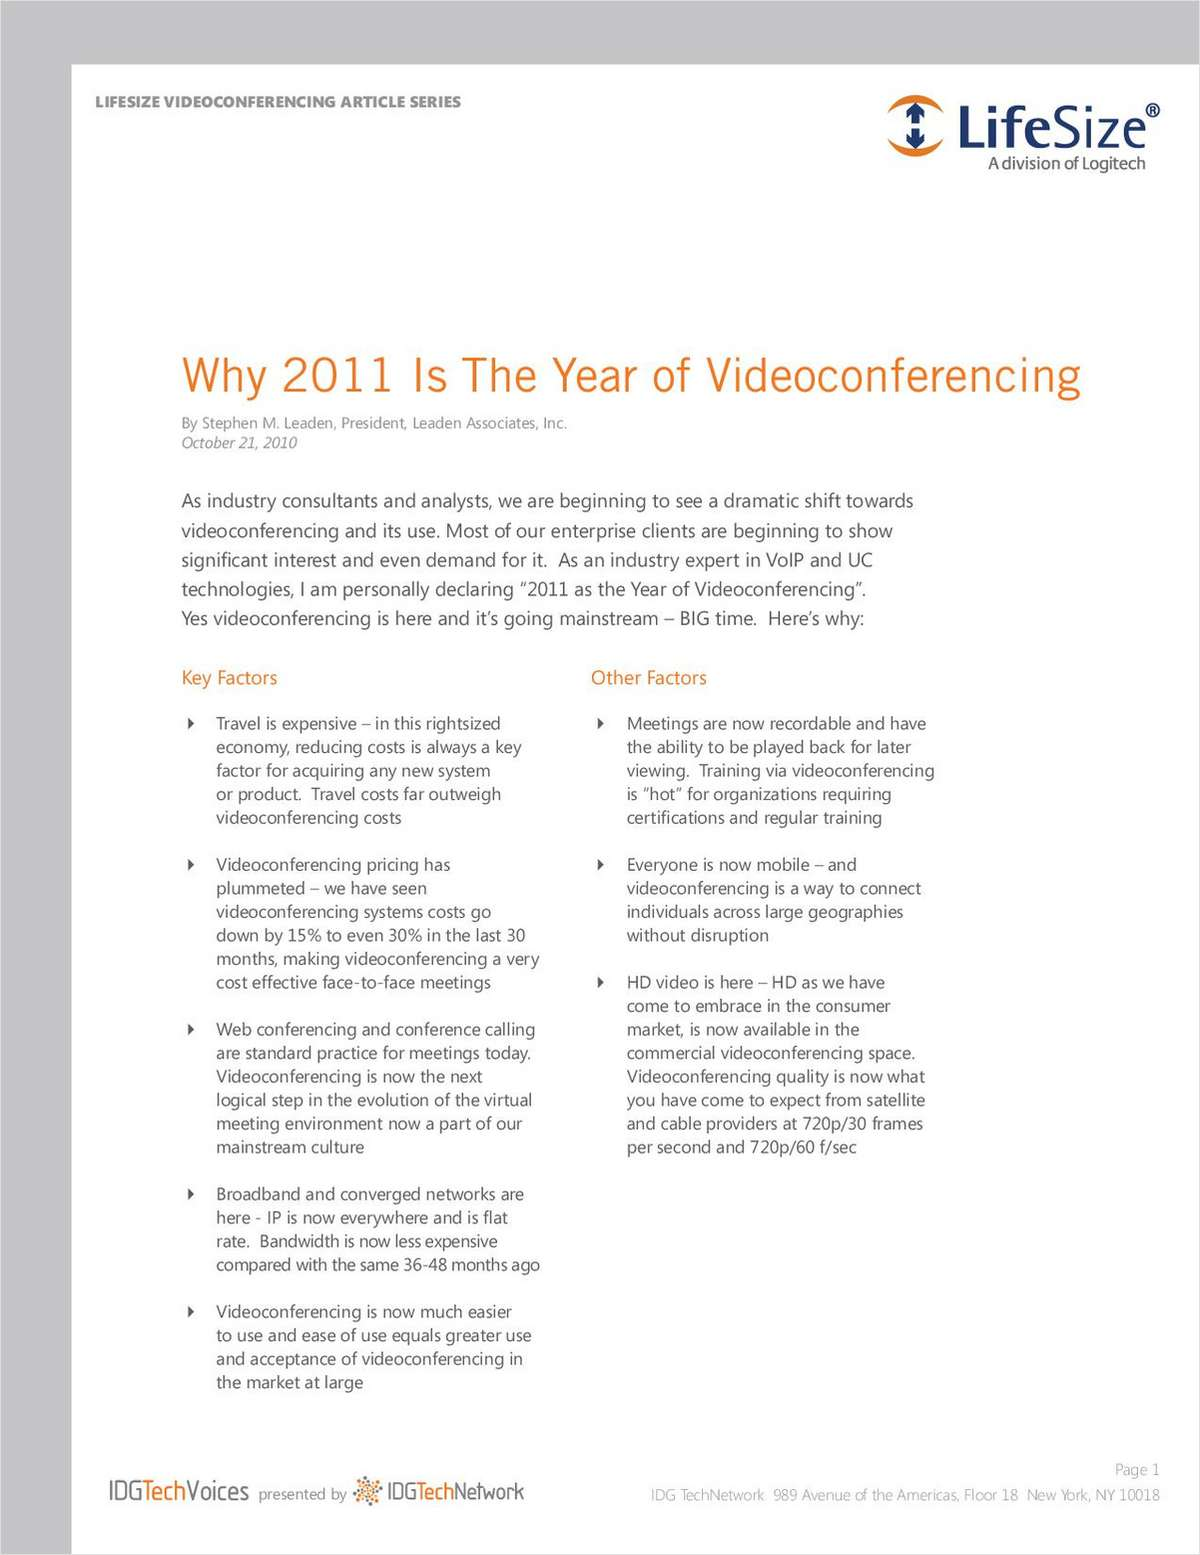 Why 2011 Is The Year of Videoconferencing